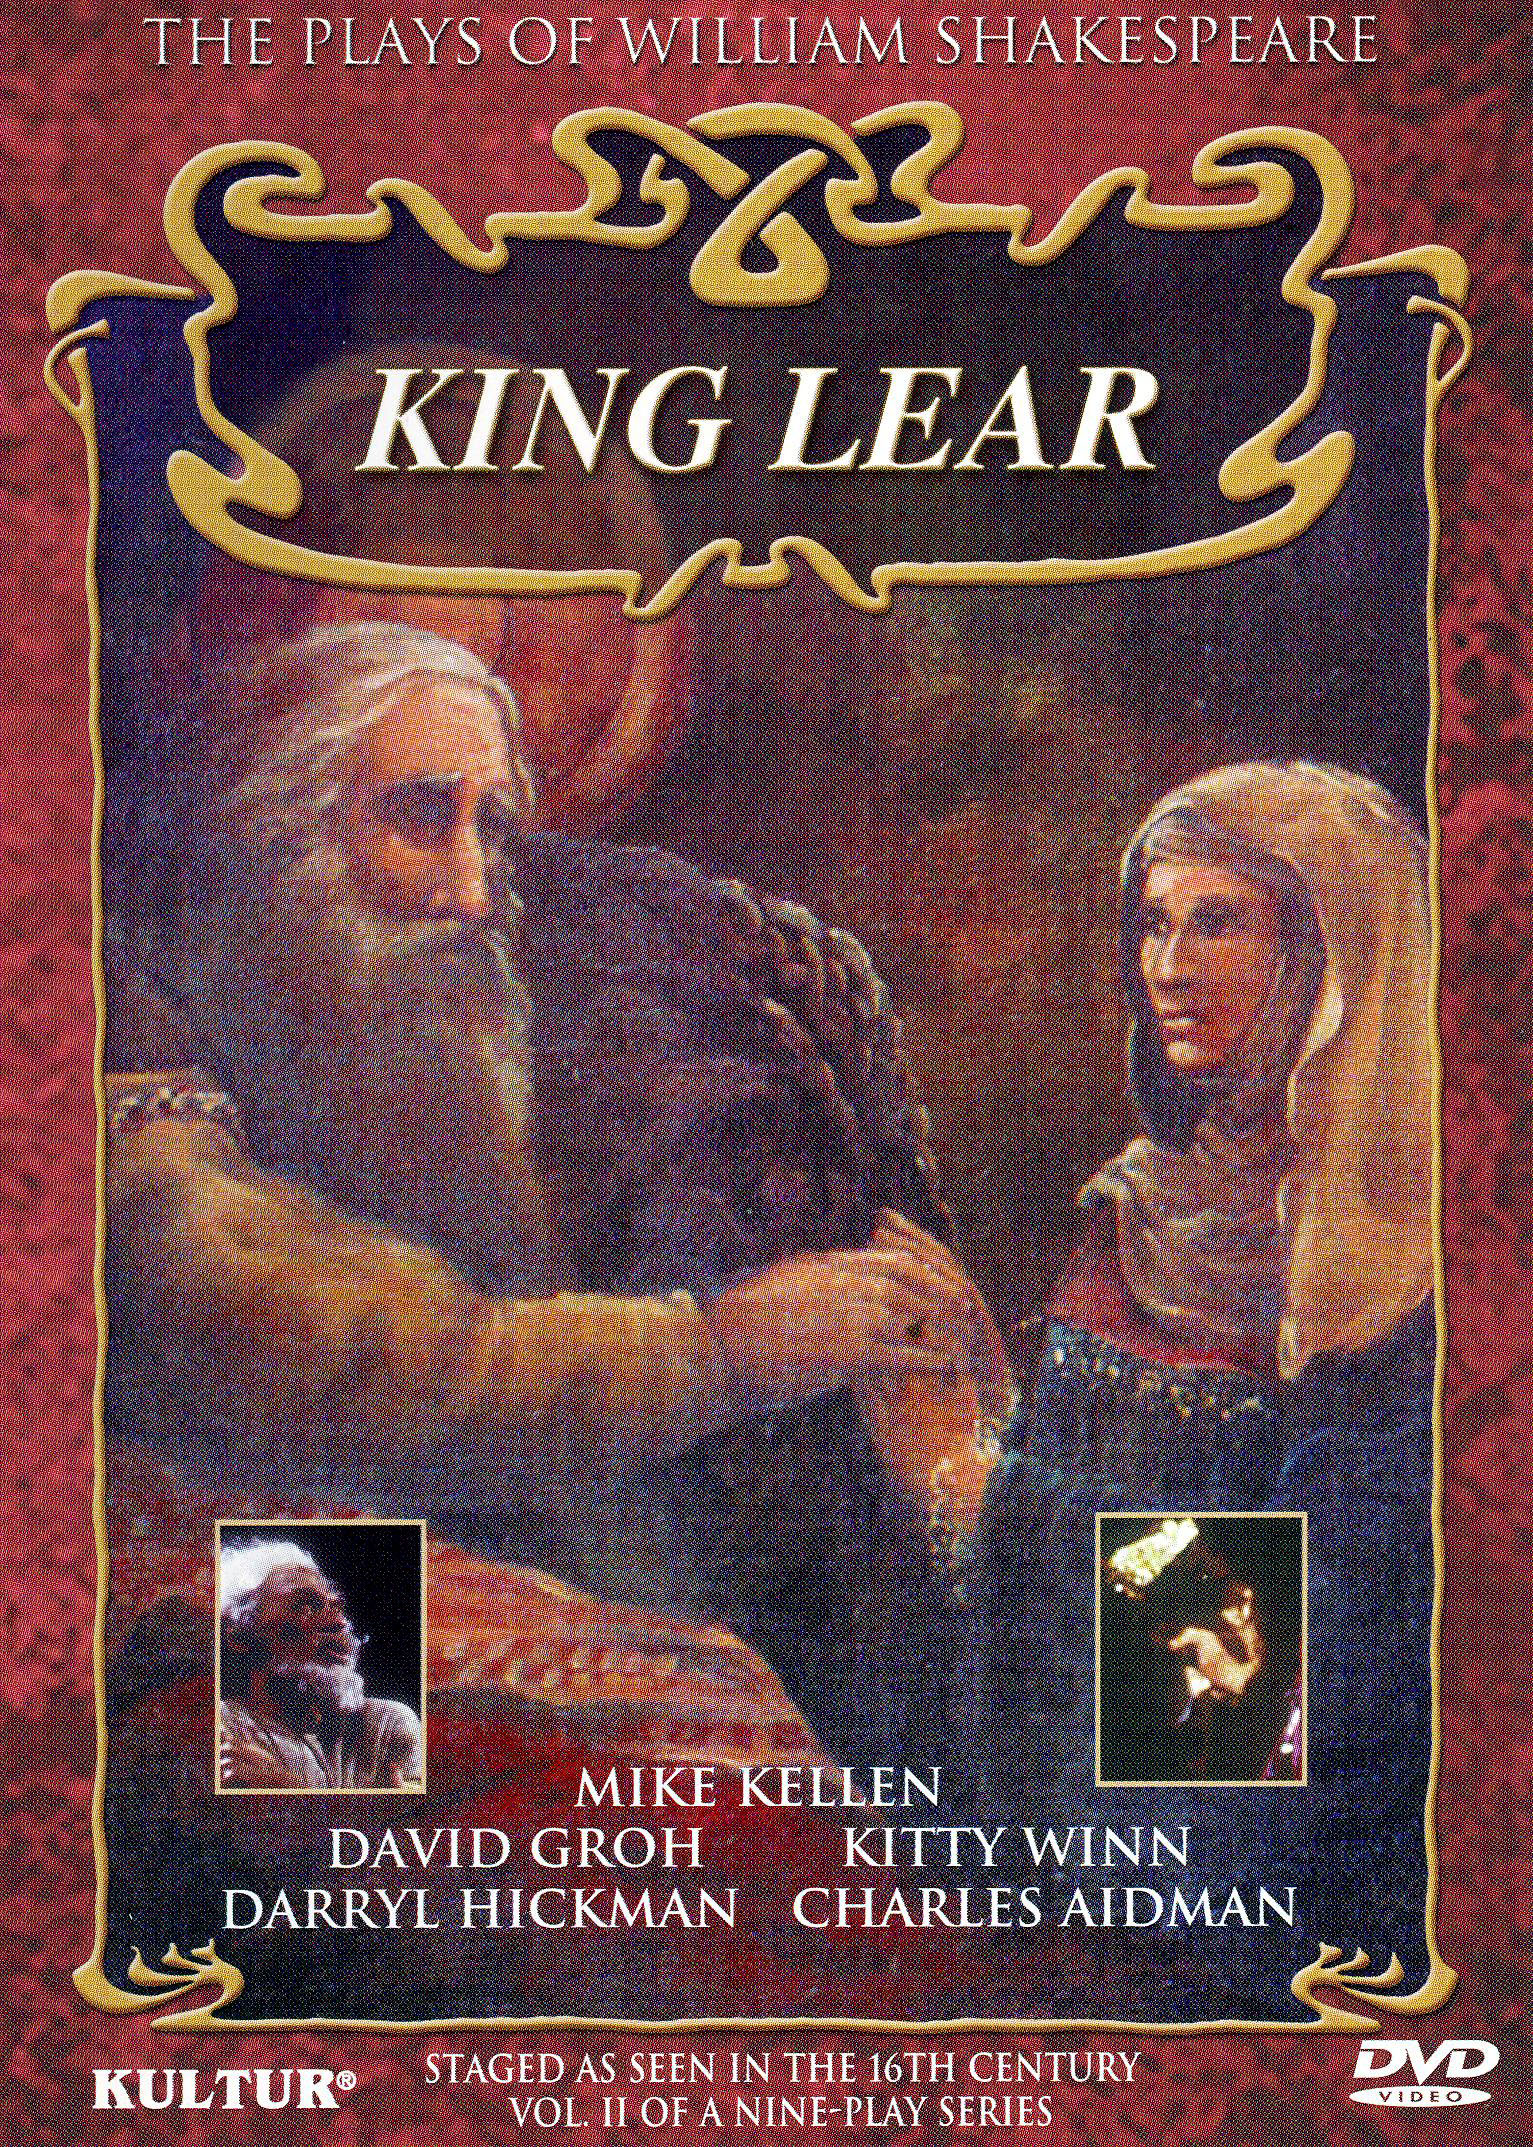 the theme of vision in king lear a play by william shakespeare King lear is a play that confuses morality with foolishness, as well as mingles insanity with wisdom william shakespeare, notorious for his clever wordplay, wrote it so that king lear 's wisest characters are portrayed as making foolish decisions shakespeare wants to portray how sometimes what appears to be a foolish idea when it comes to money is often the wisest decision of all.